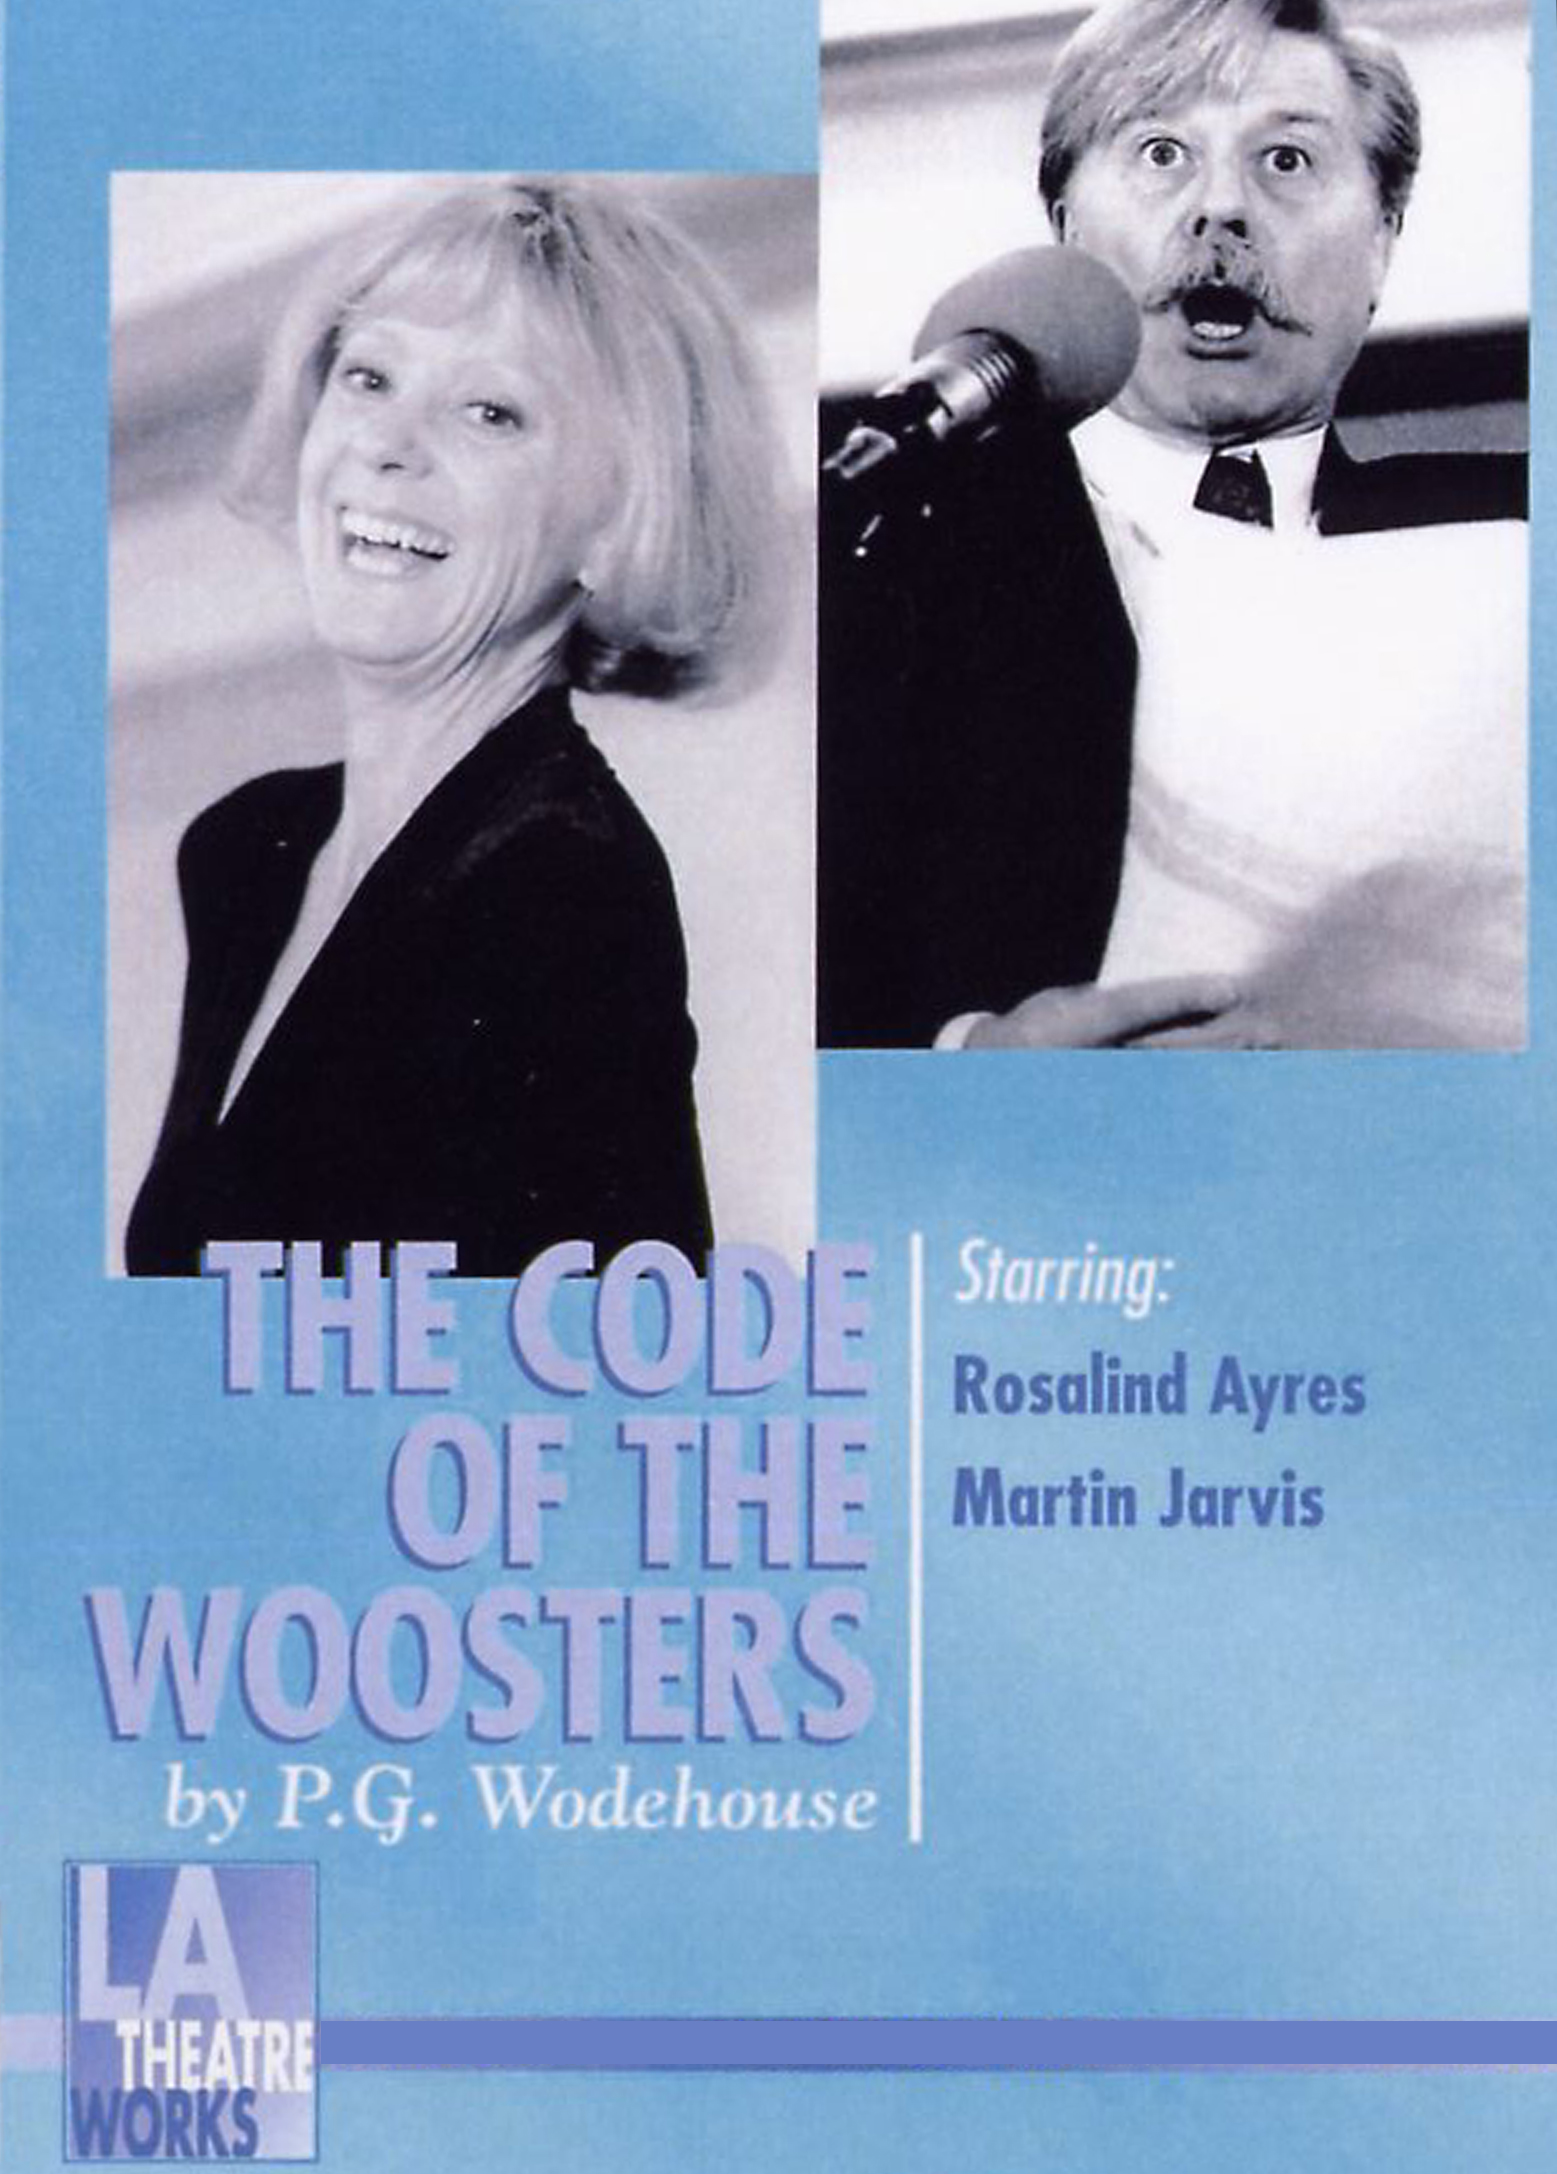 Poster for the audio drama The Code of the Woosters